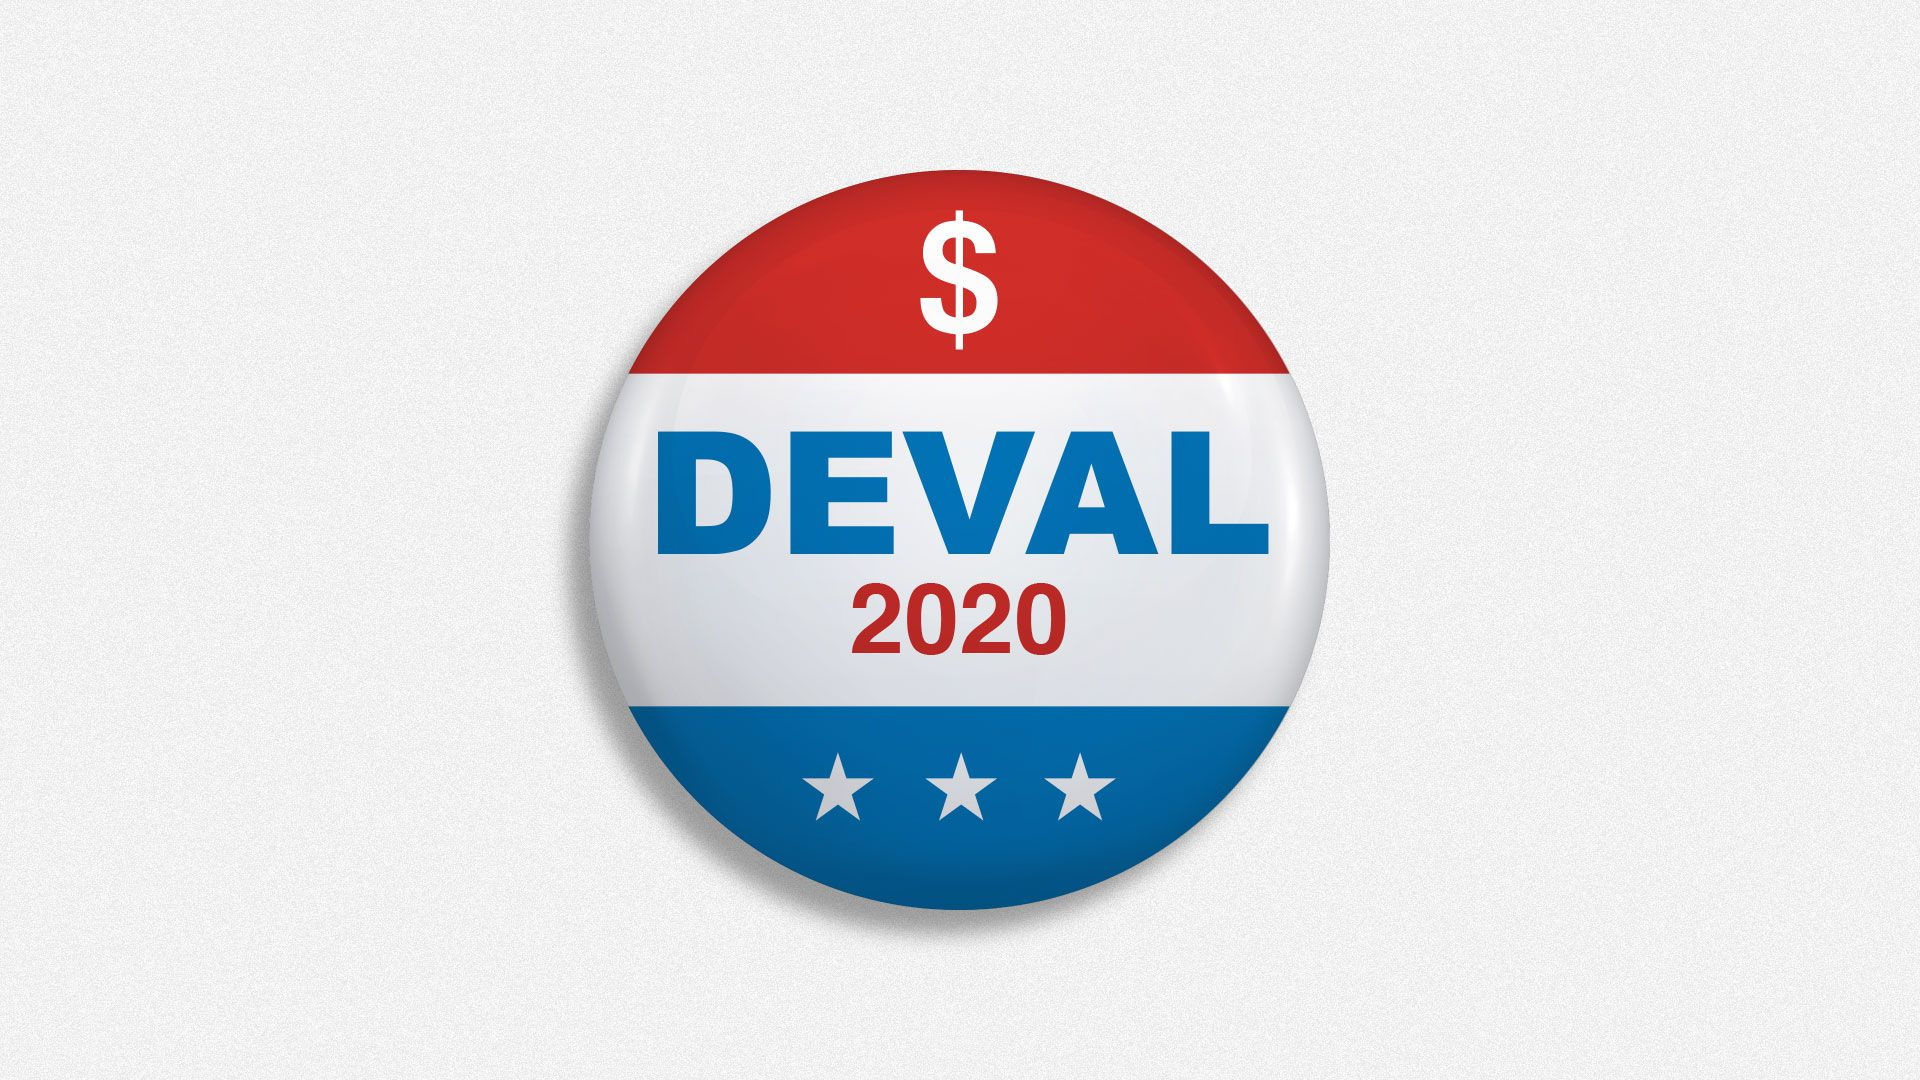 Illustration of Deval 2020 campaign button with dollar sign and stars.